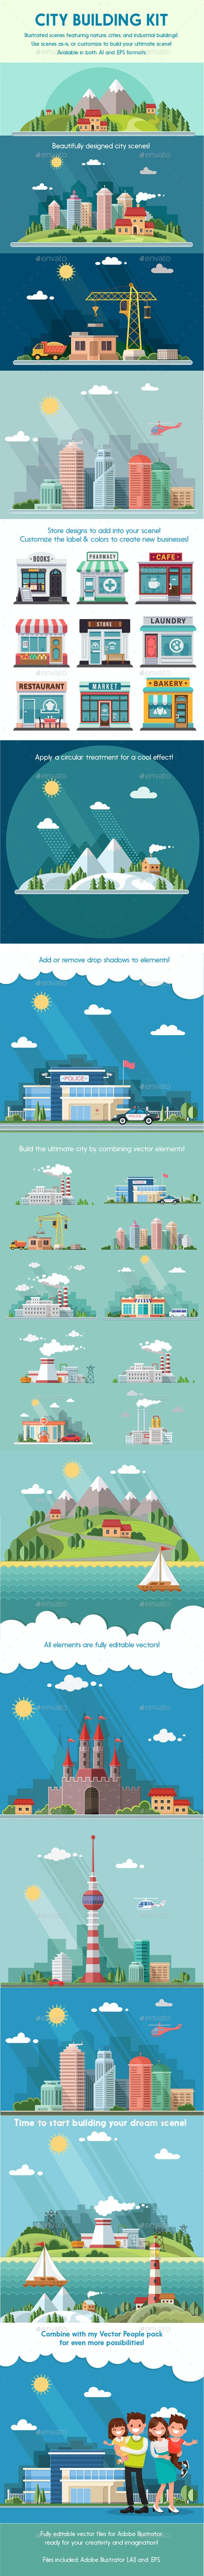 Vector City Building Kit - Buildings Objects